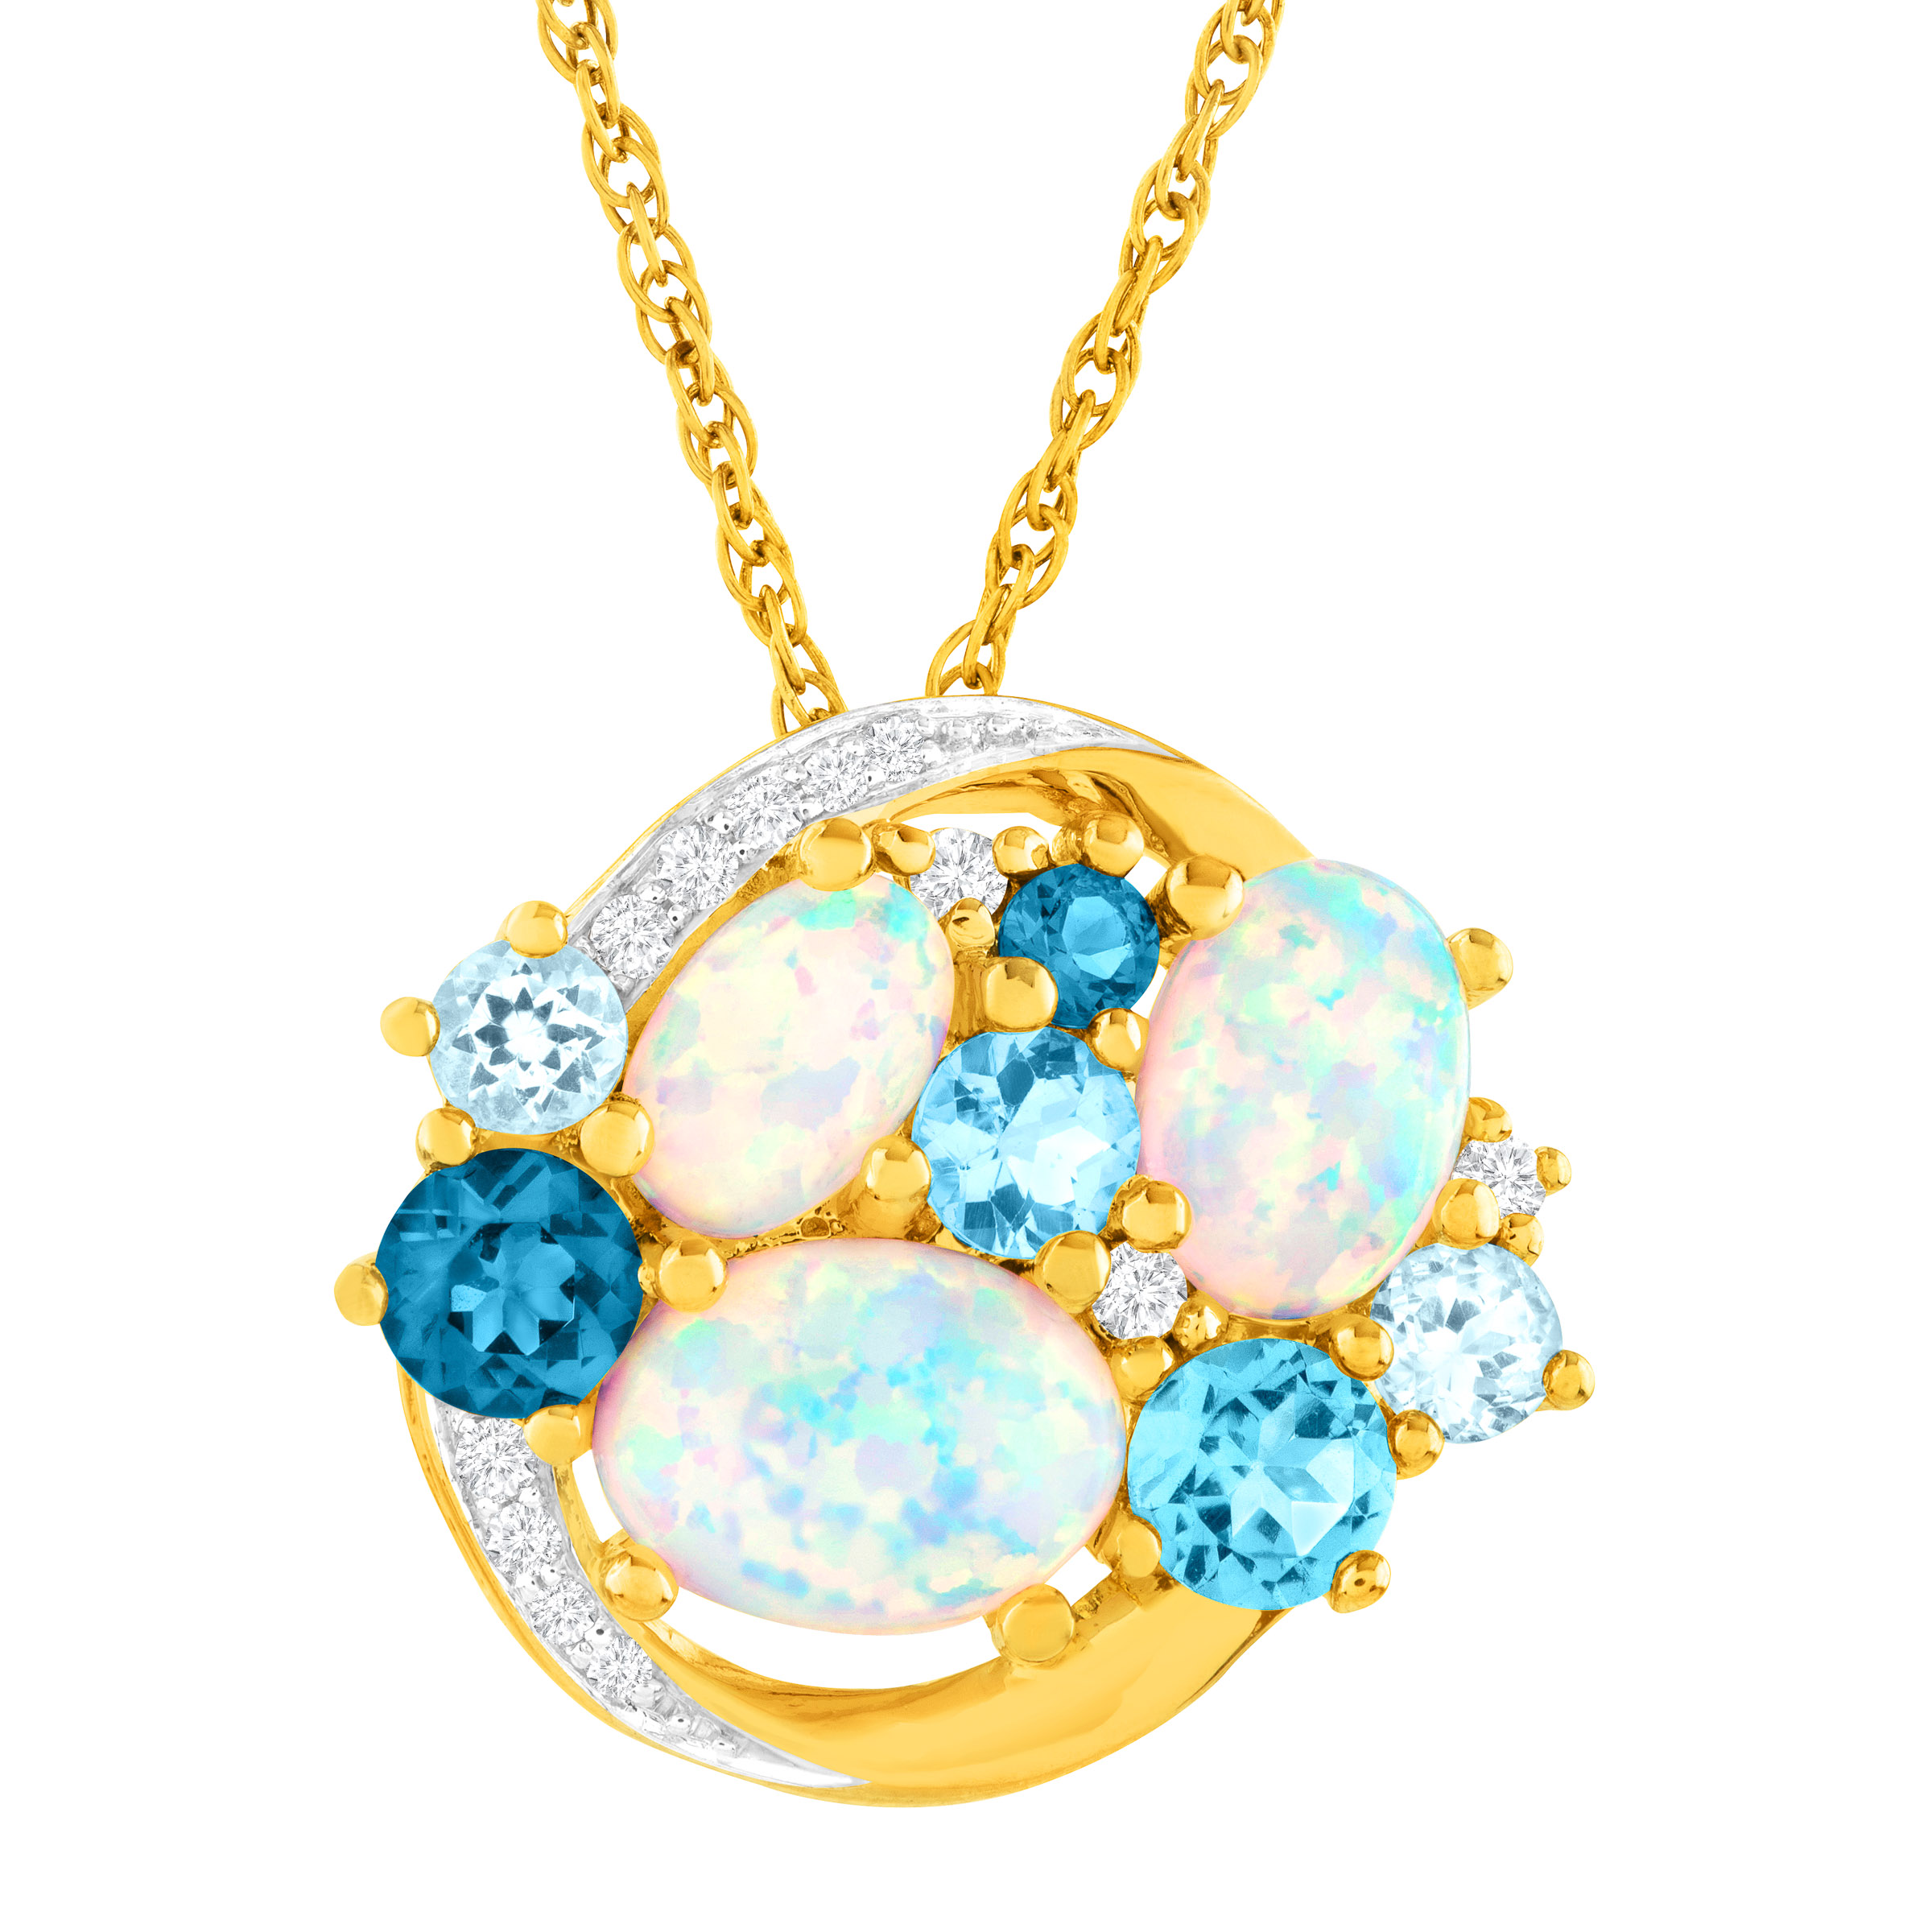 2 3 8 ct Created Opal, White Sapphire & Natural Blue Topaz Pendant Necklace in 14kt Gold-Plated Sterling Silver by Richline Group